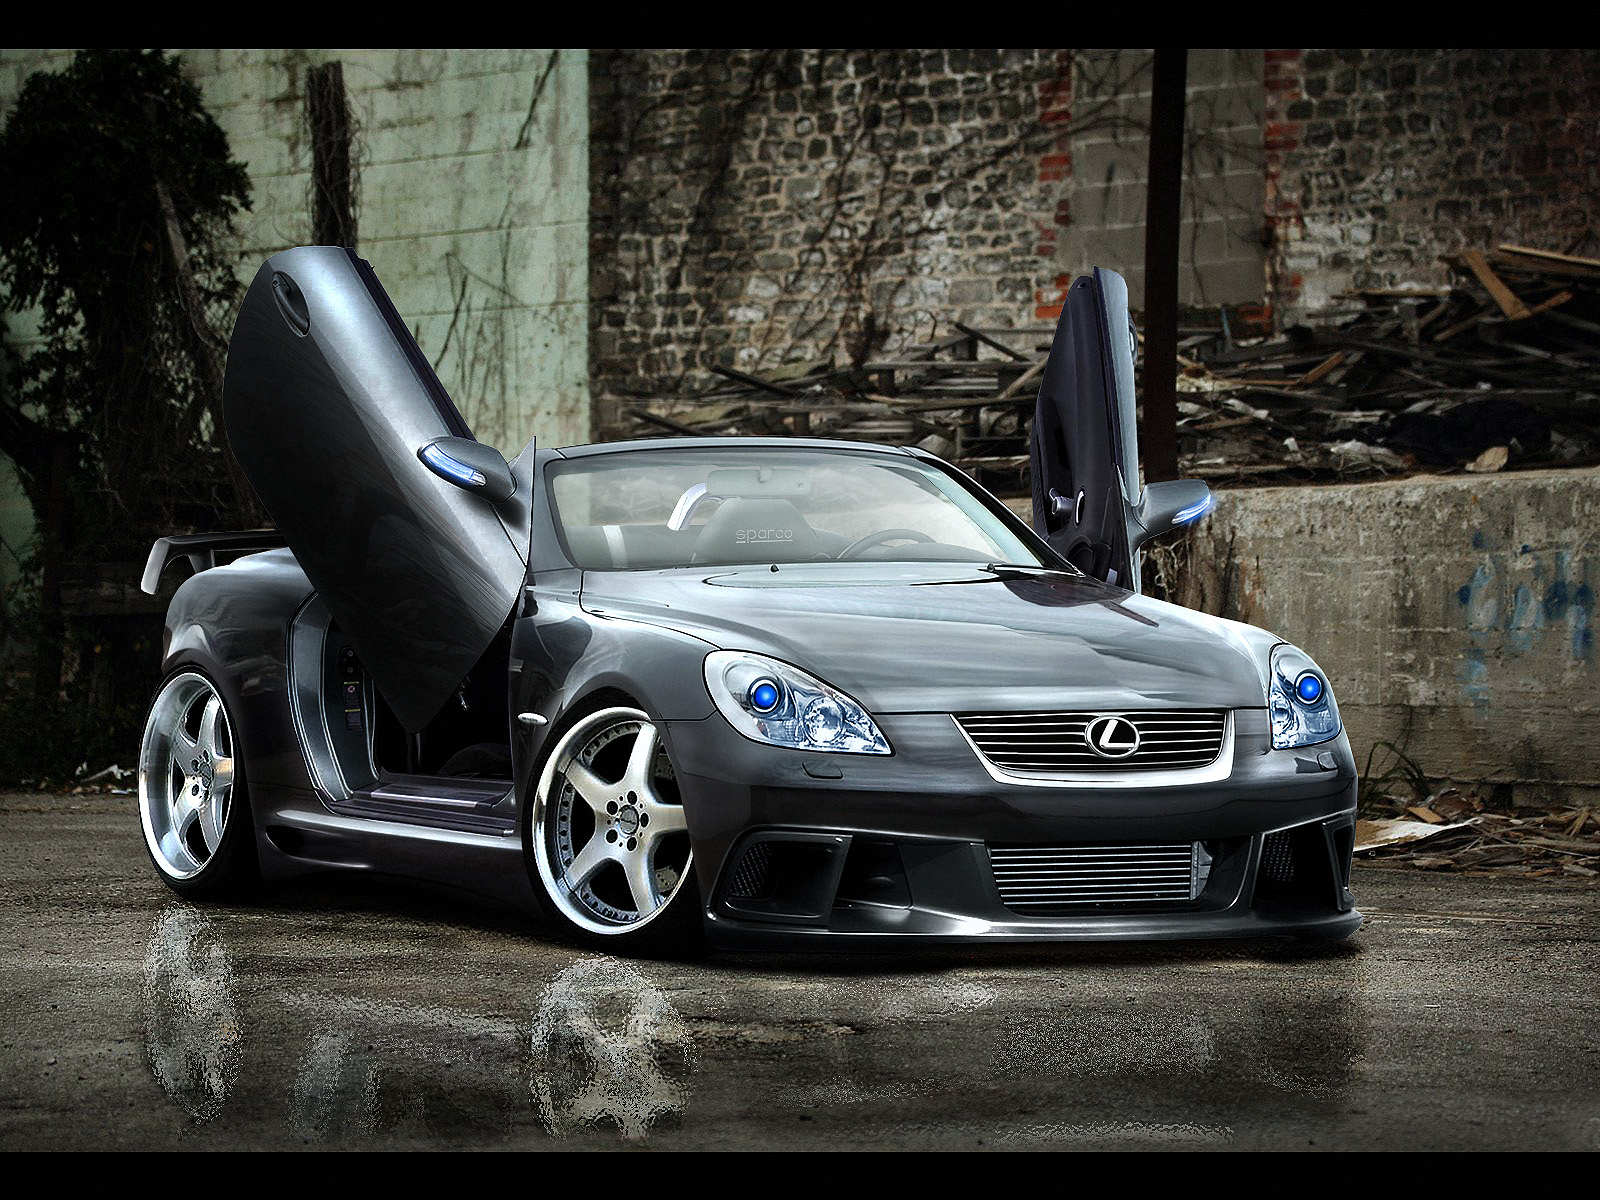 Lexus-SC-430-wallpapers.jpg